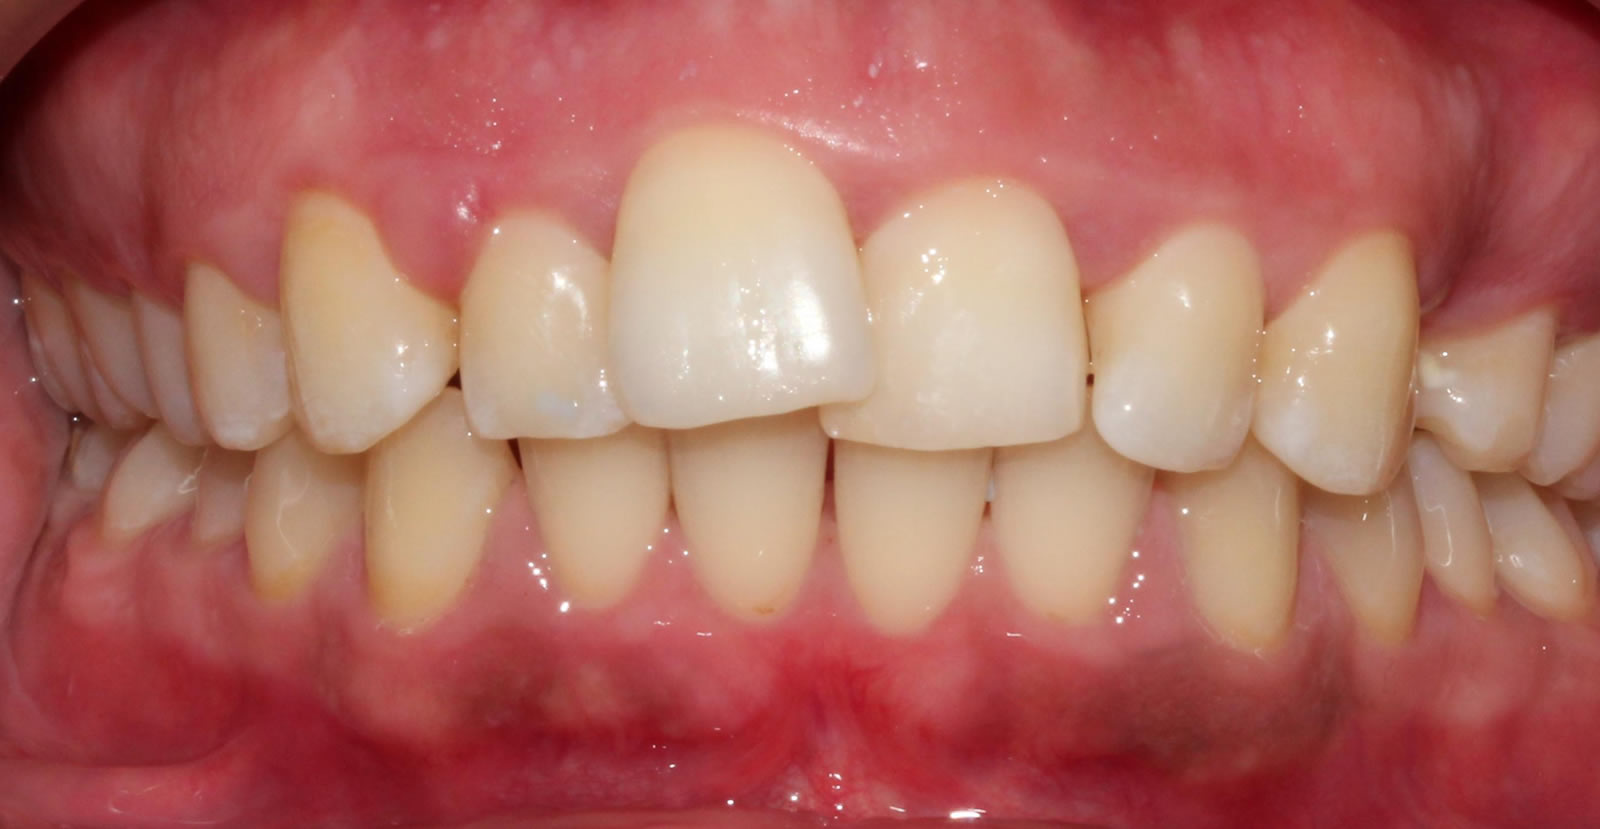 Six months smiles implants